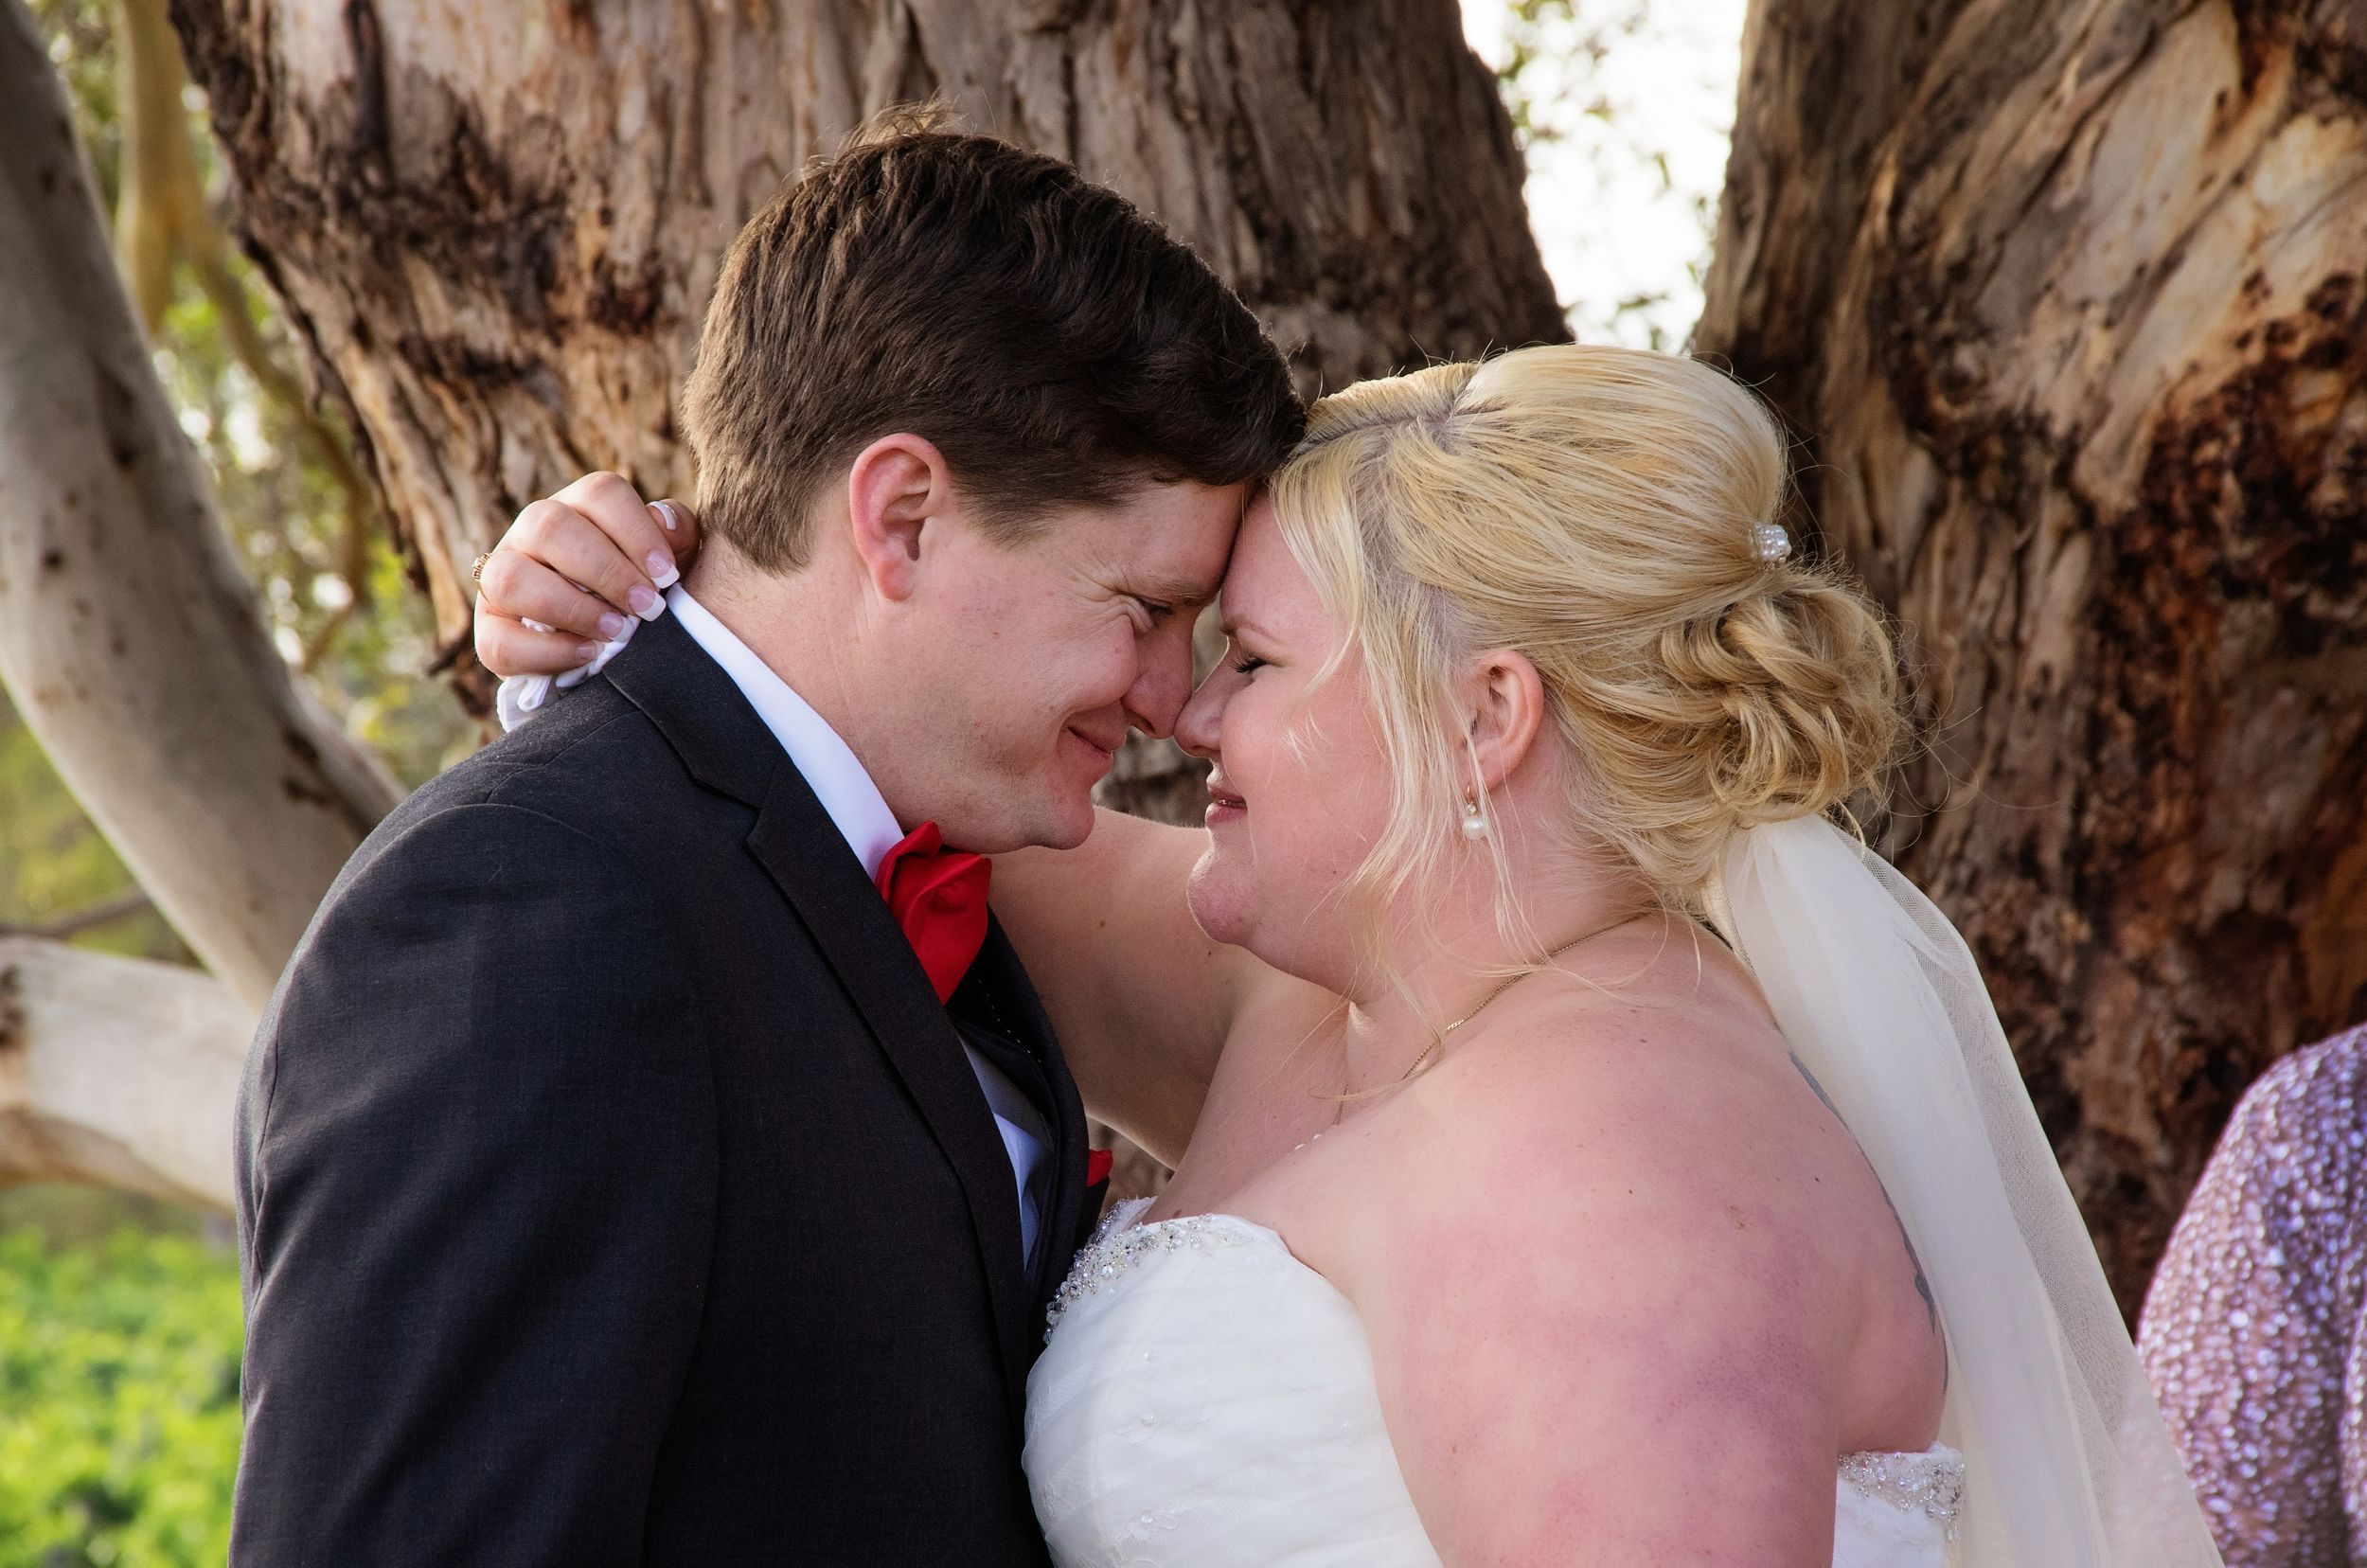 close up of bride and groom noses touching embracing close